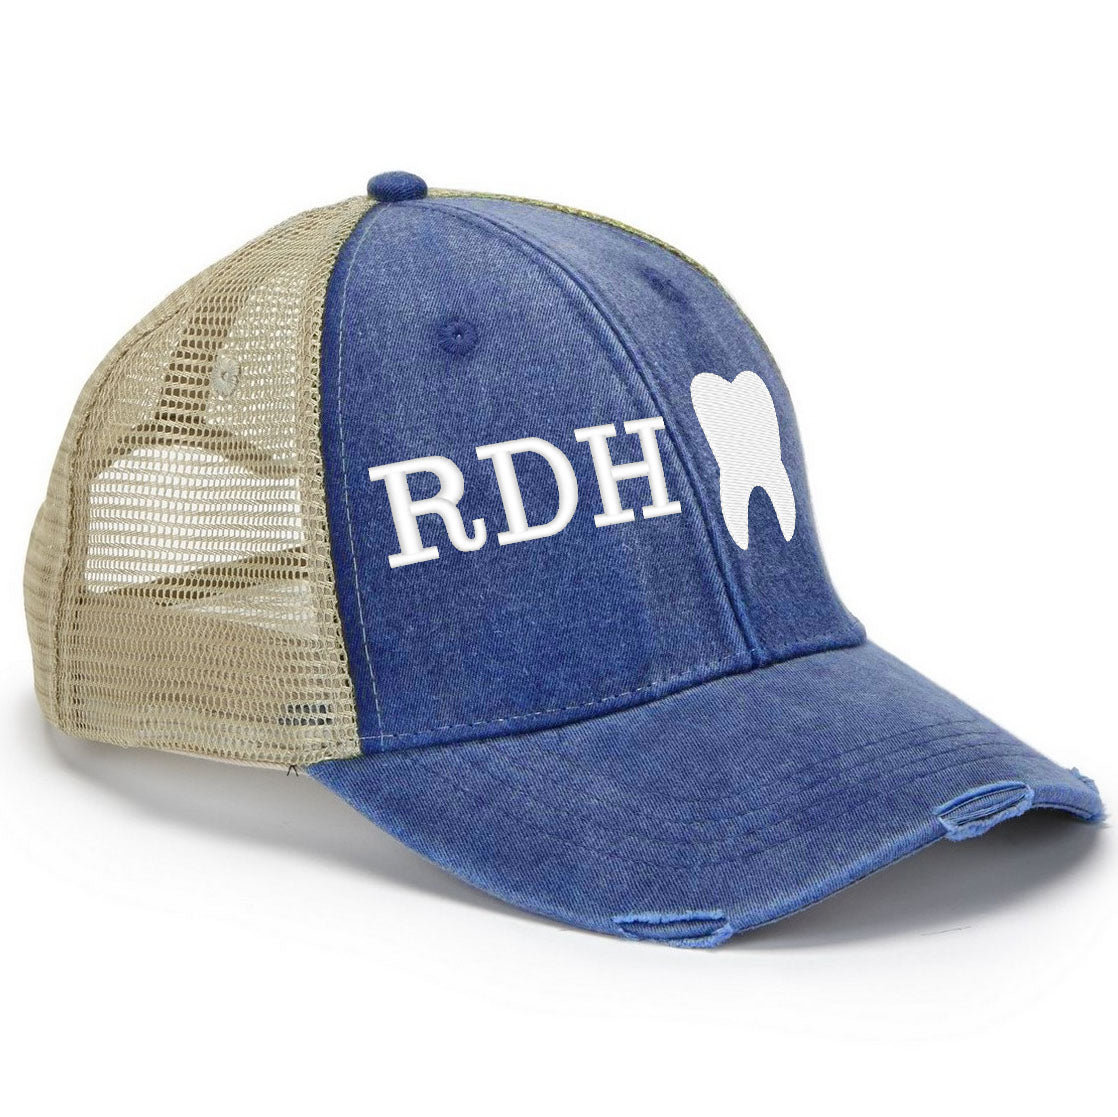 Dental Tooth Trucker Hat